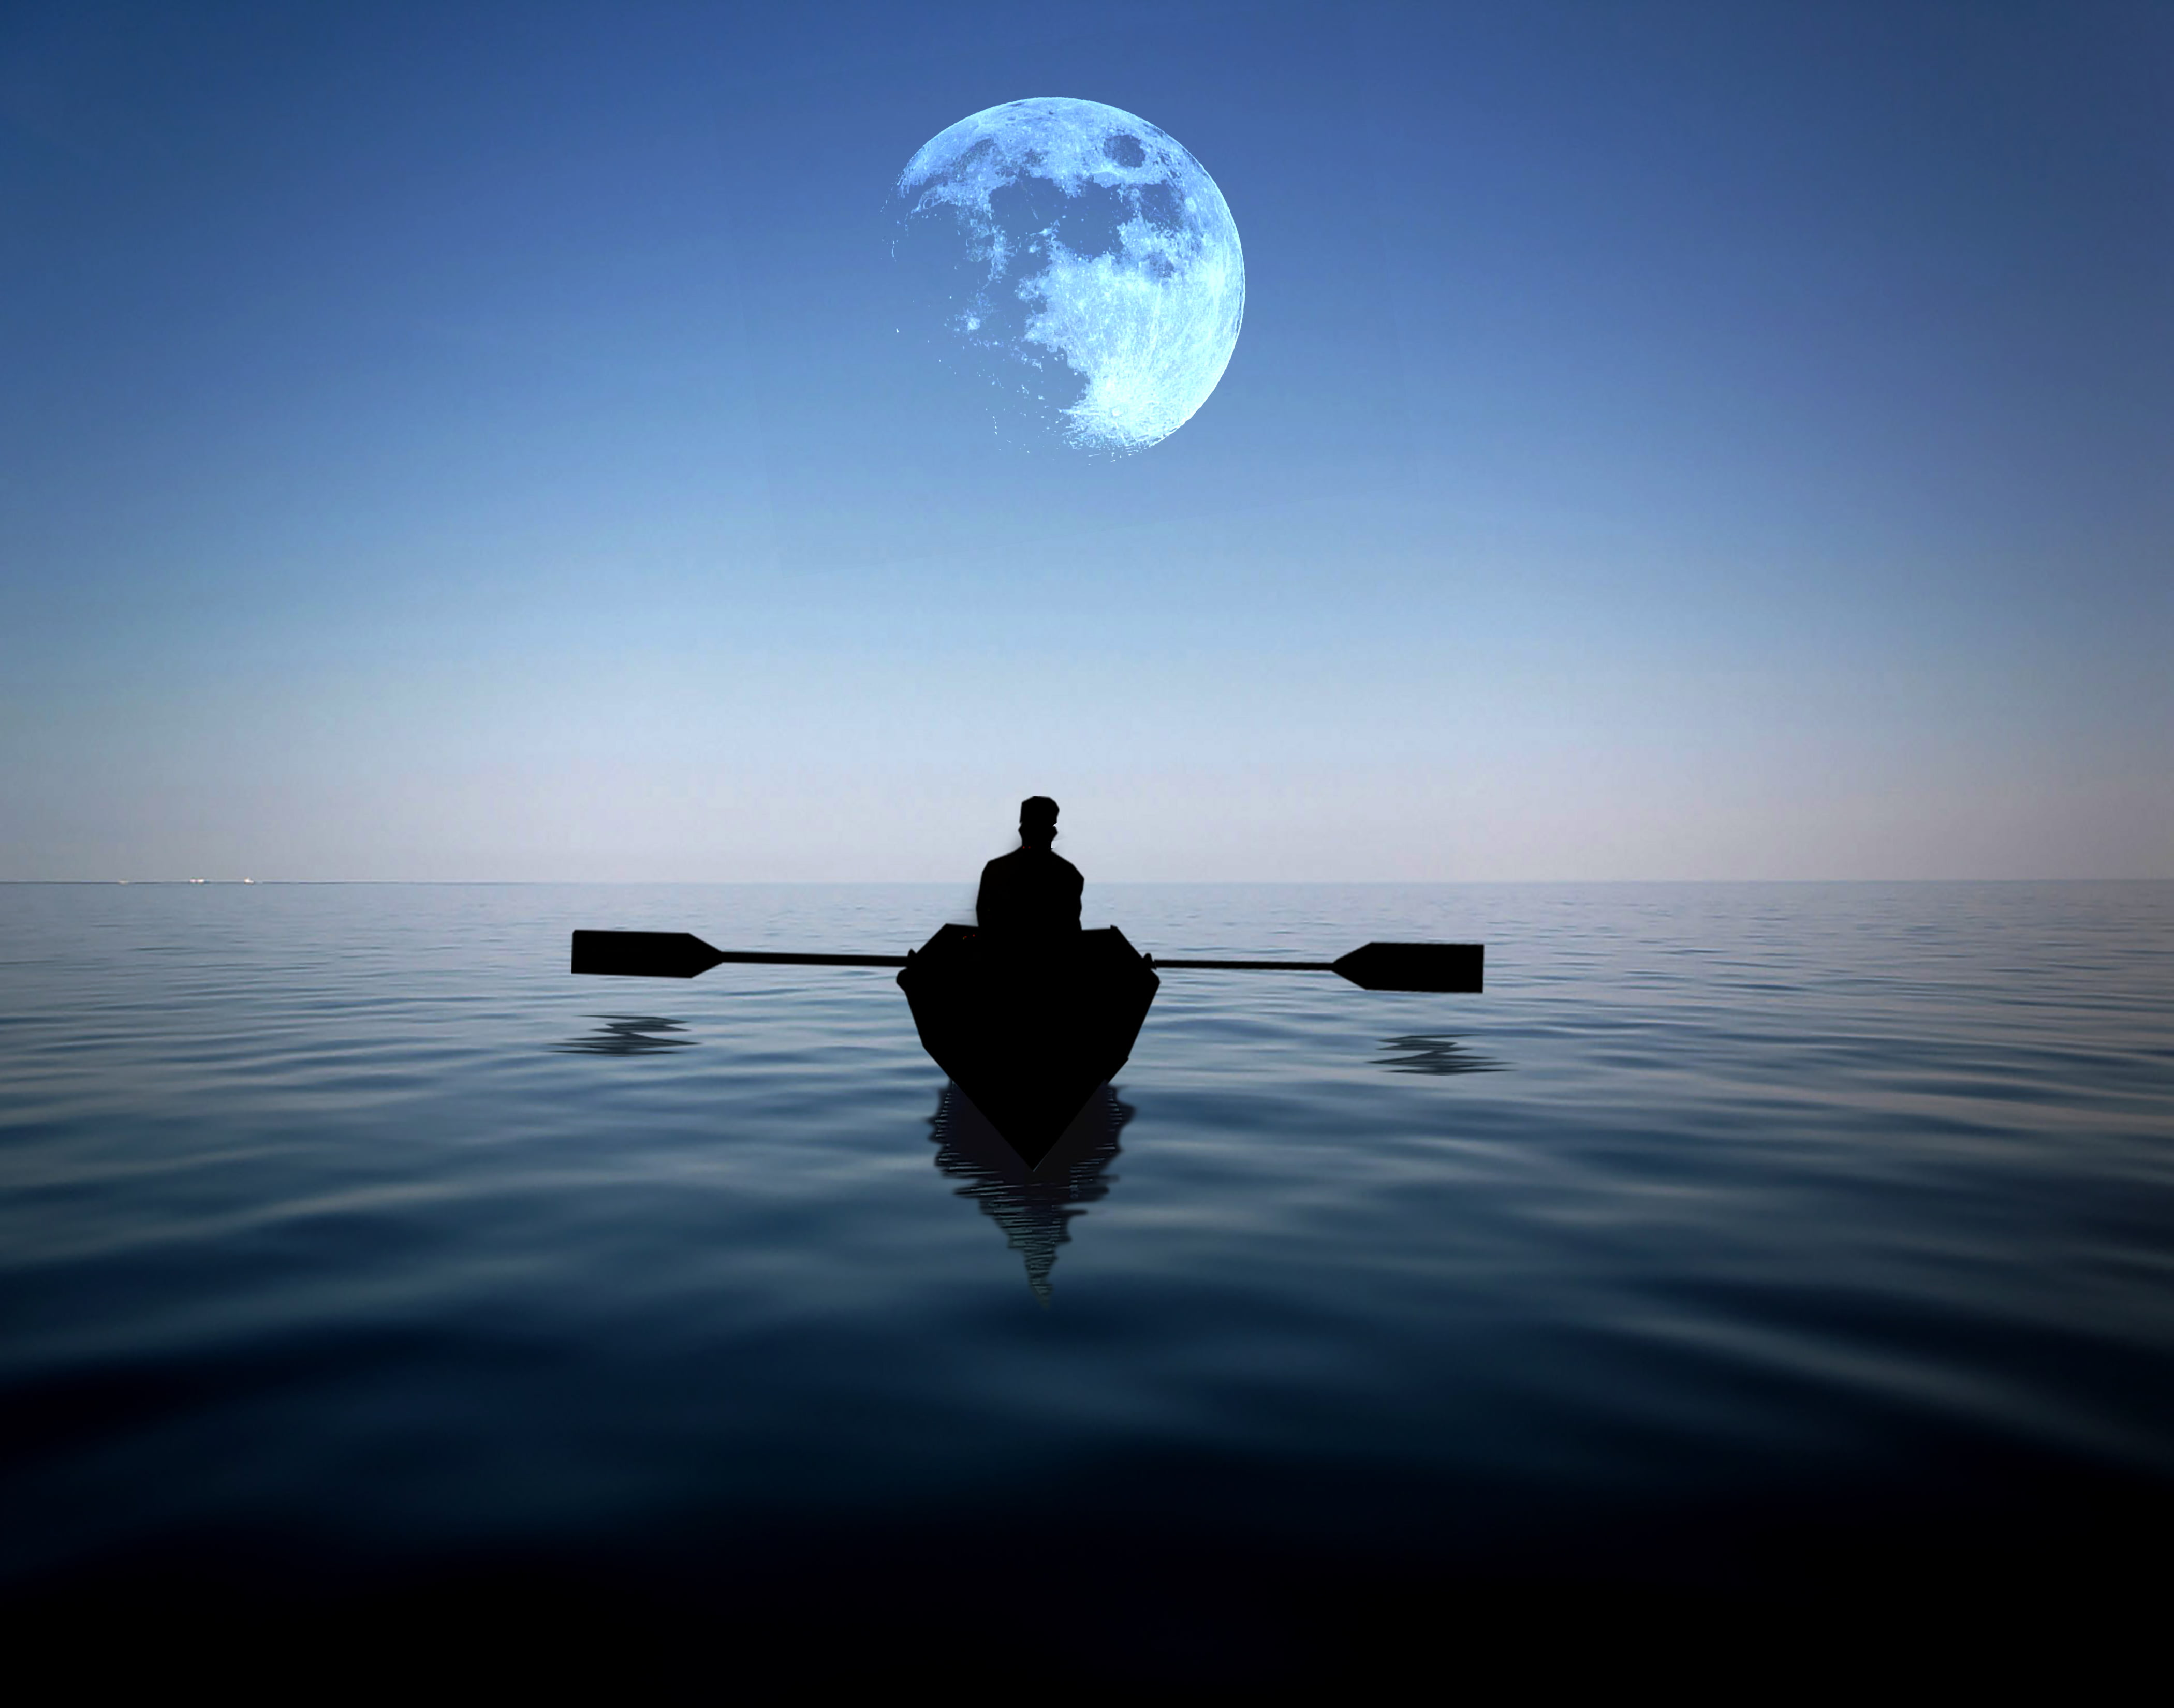 Free Download Girl Wallpaper For 360x640 Man Riding On A Boat Alone In The Sea With Moon Hovering